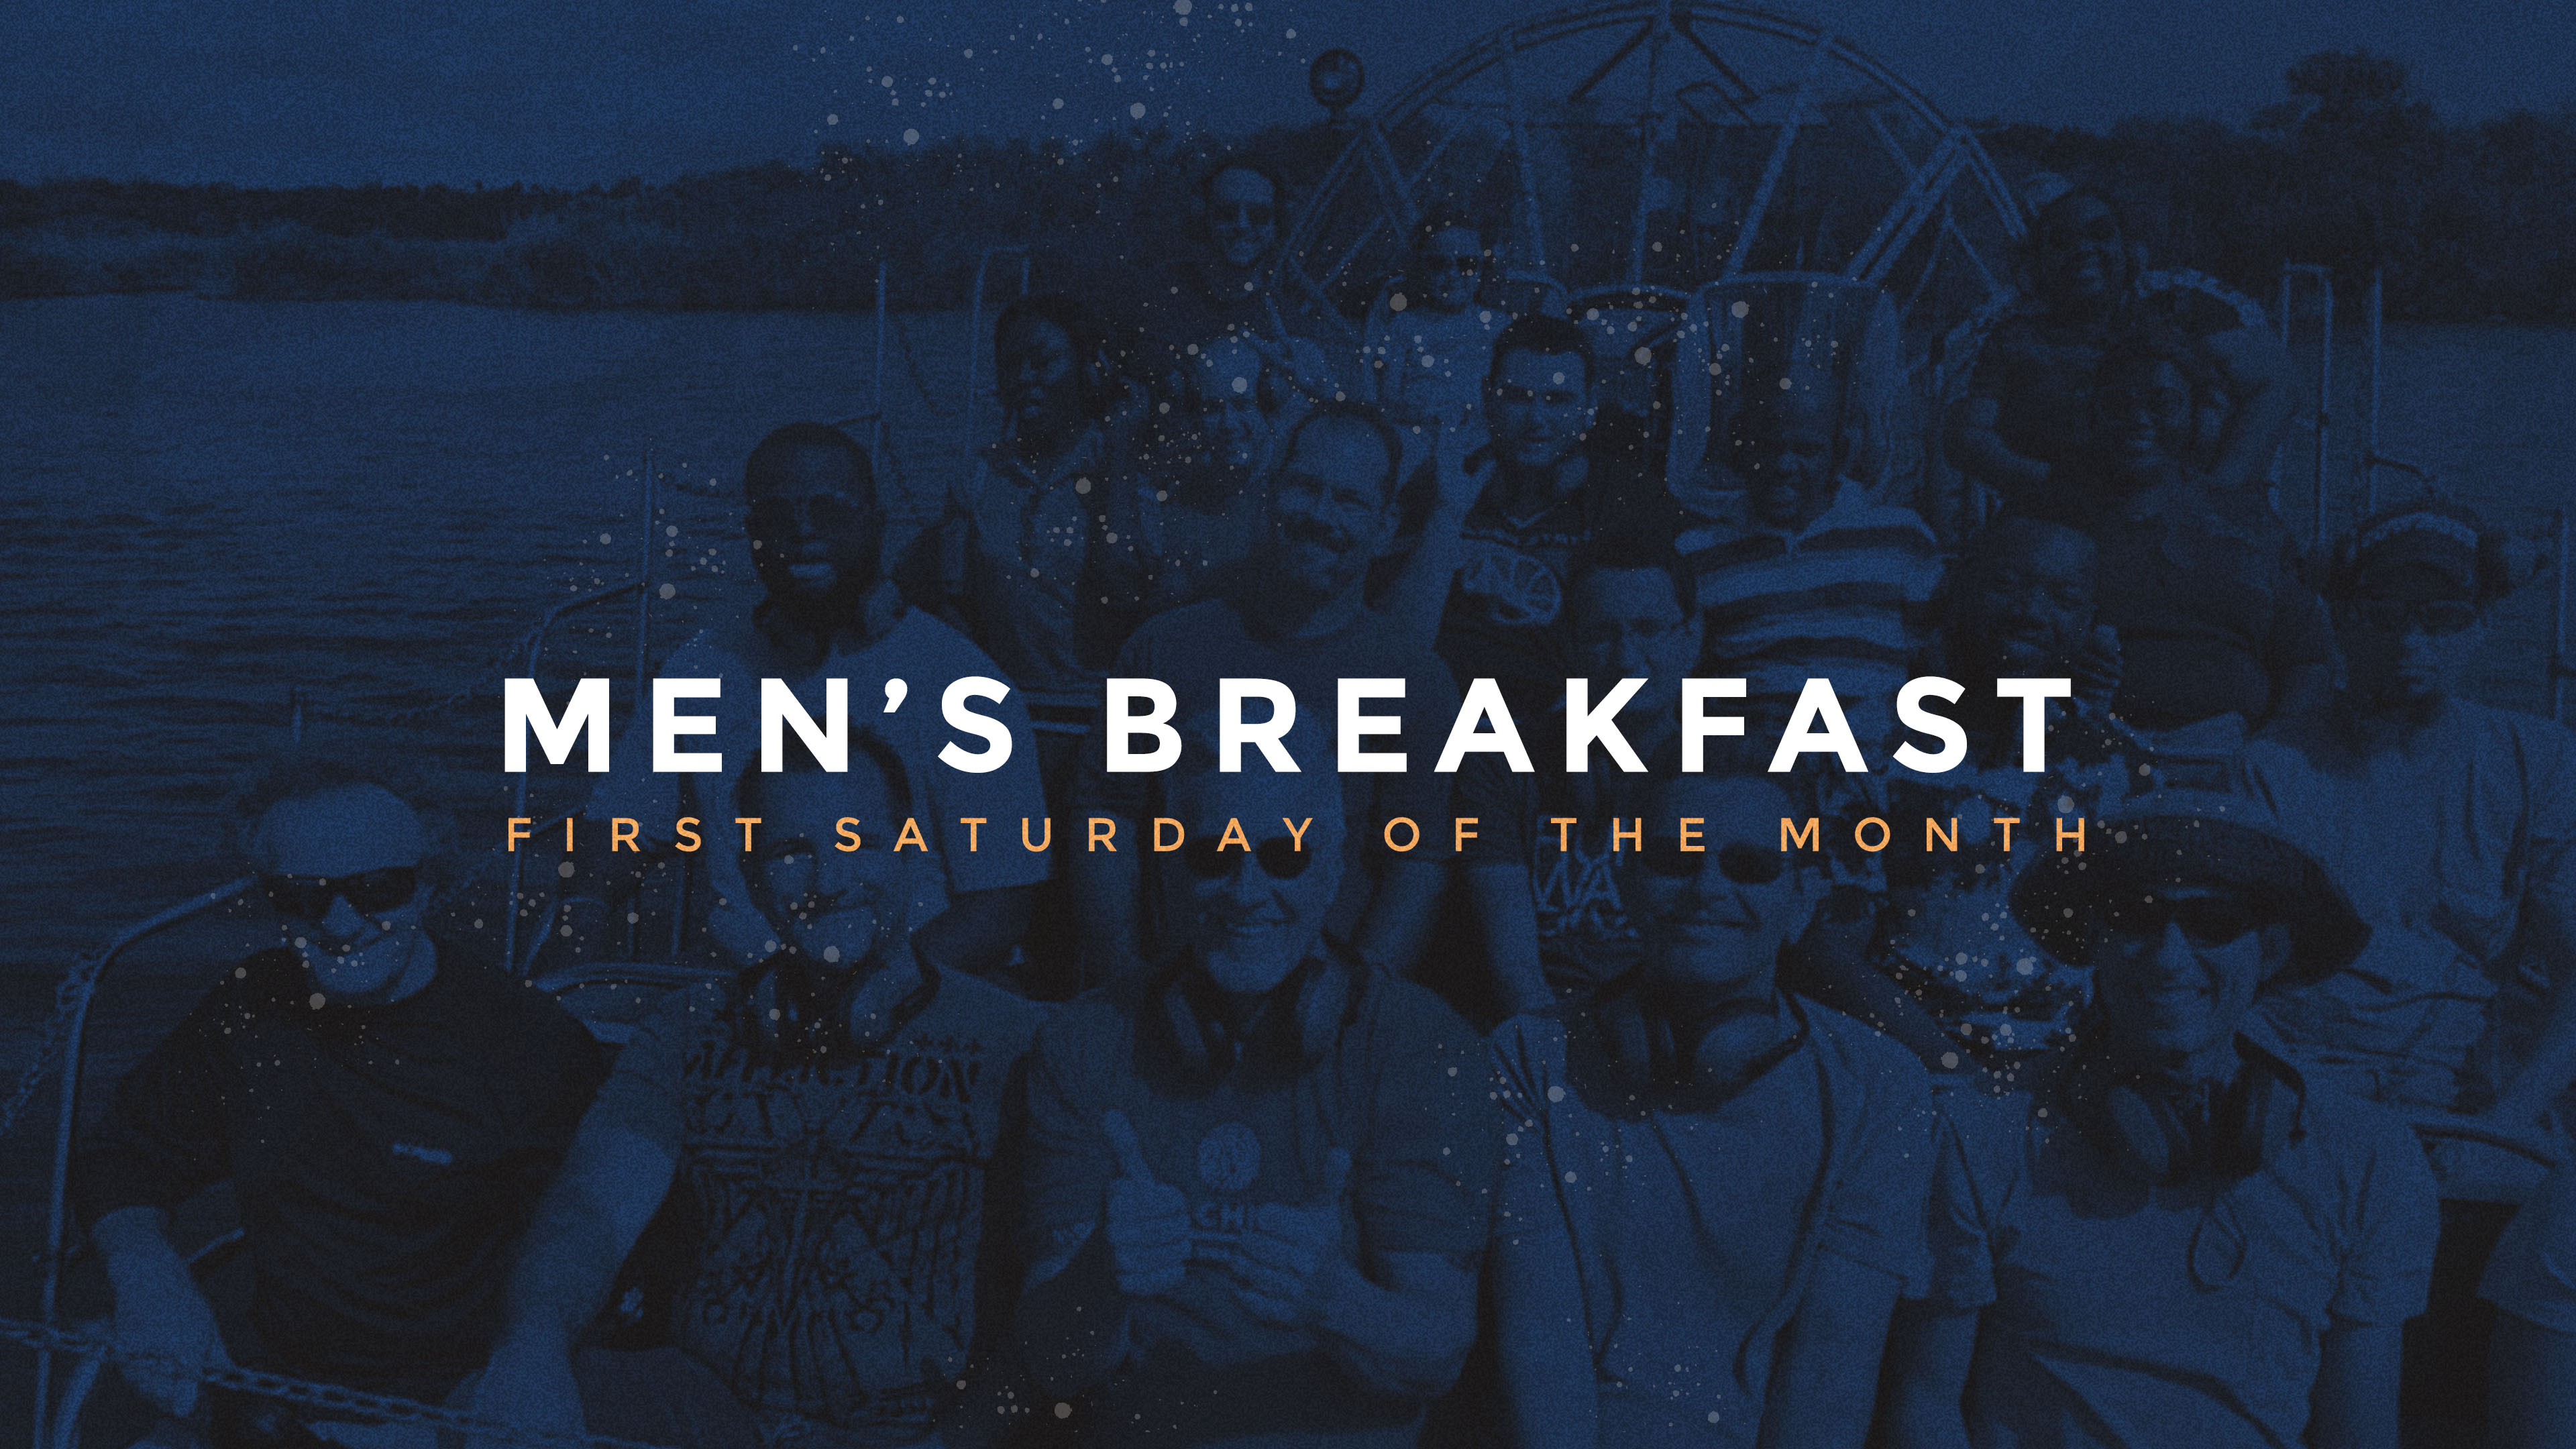 Men's Breakfast 8-19 image